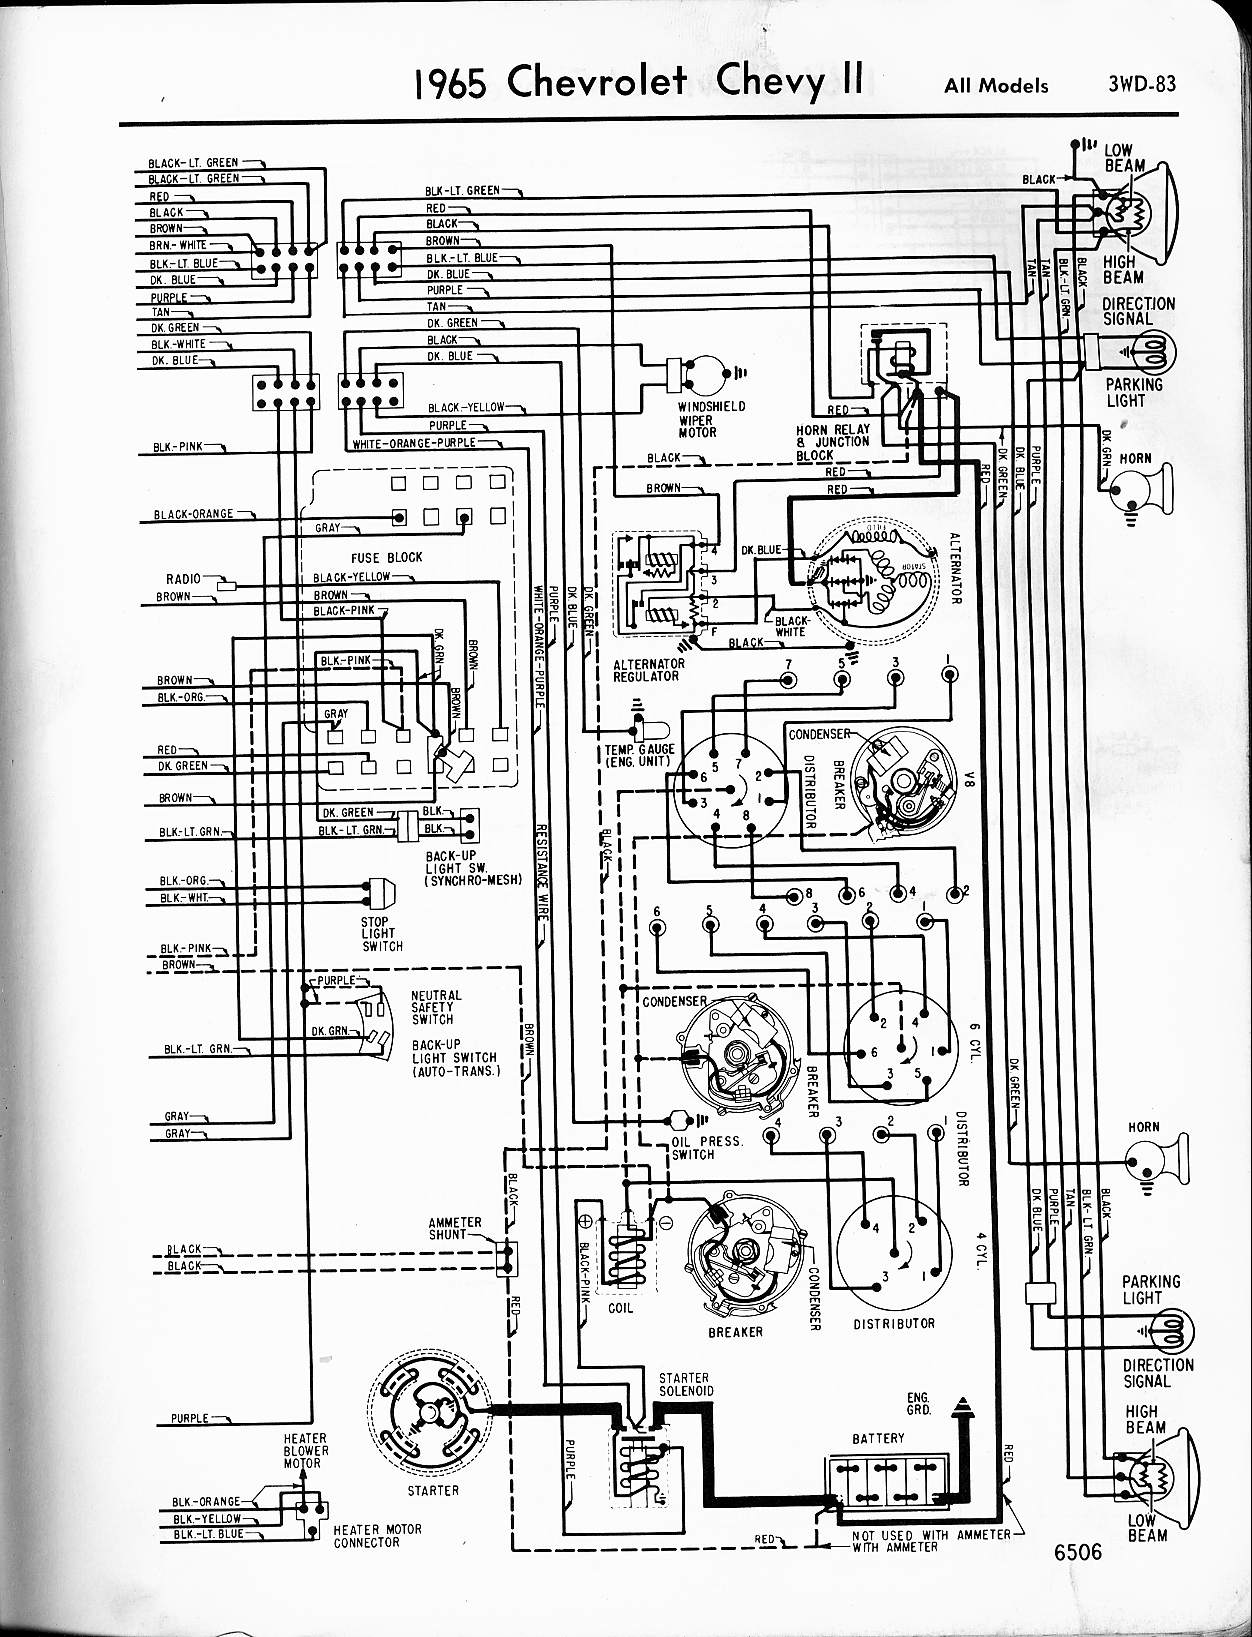 MWireChev65_3WD 083 1965 chevelle wiring diagram 1965 chevrolet wiring diagram \u2022 free 65 chevelle wiring harness at aneh.co